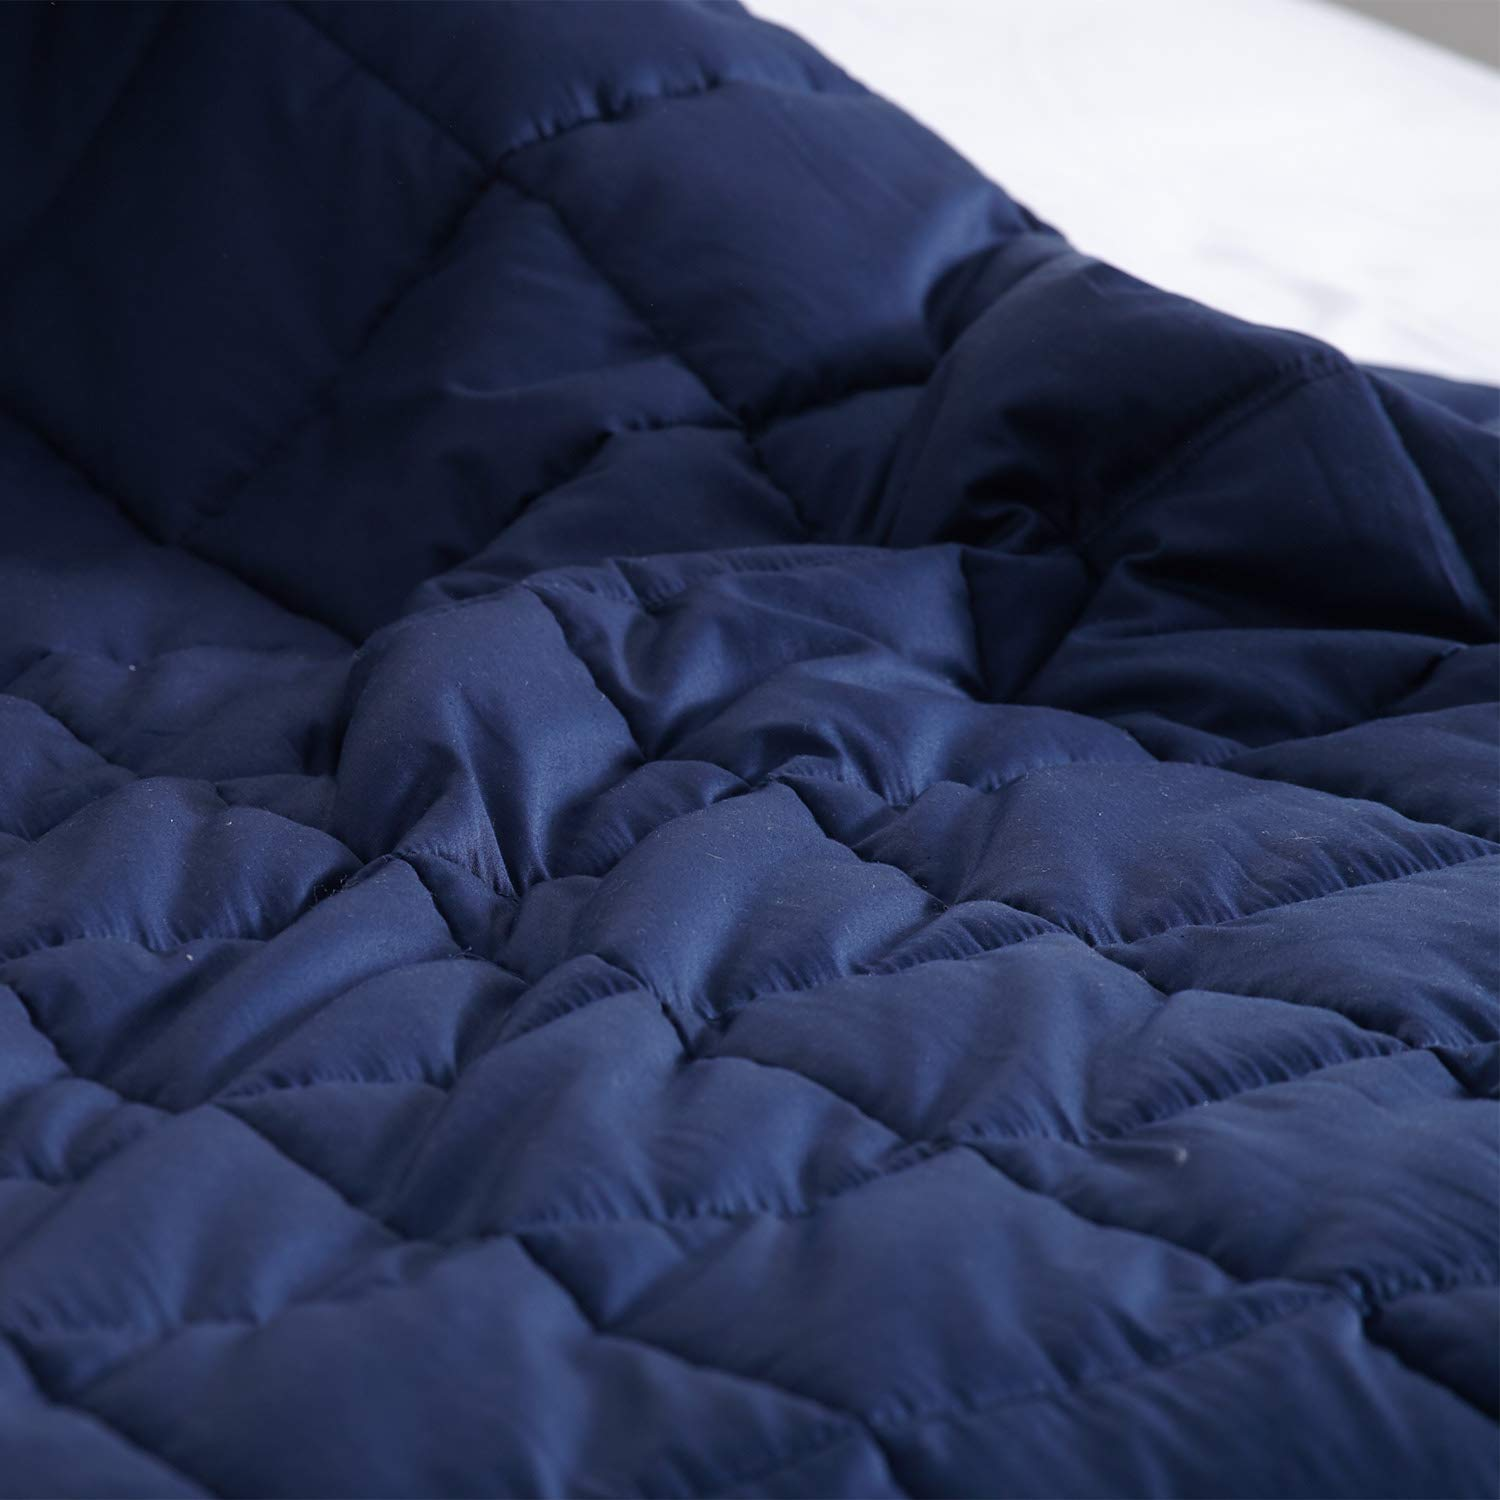 Kawaii/_Kids Cooling Weighted Blanket Adult Summer 15lbs 48x78, Navy Blue,Twin Size ,Heavy Blanket 2.0 for Better Deeper Sleep